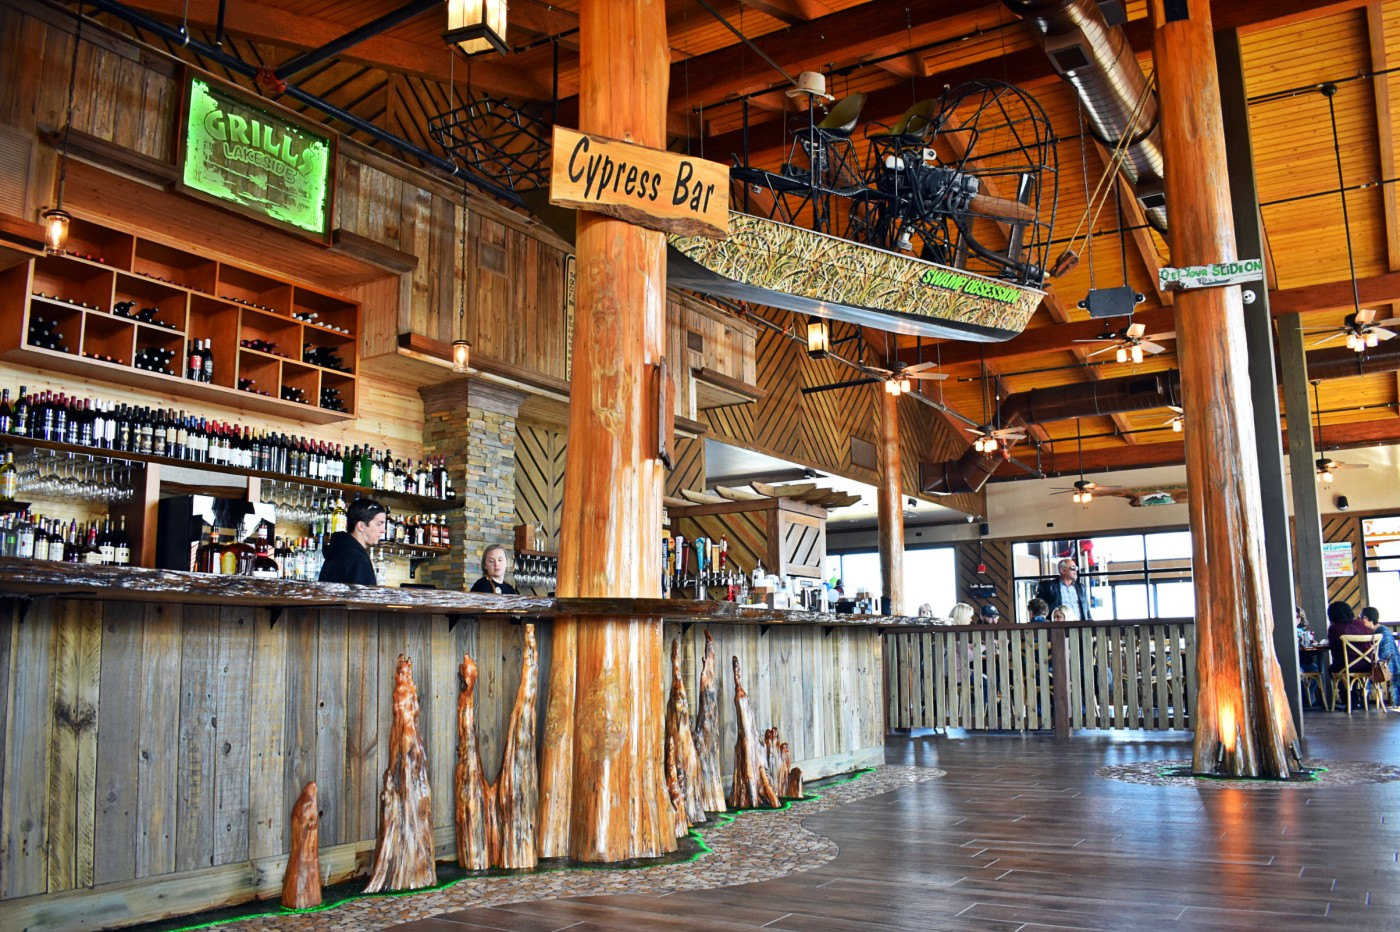 Grills lakeside orlando waterfront seafood restaurant and tiki bar - Grills seafood deck tiki bar ...